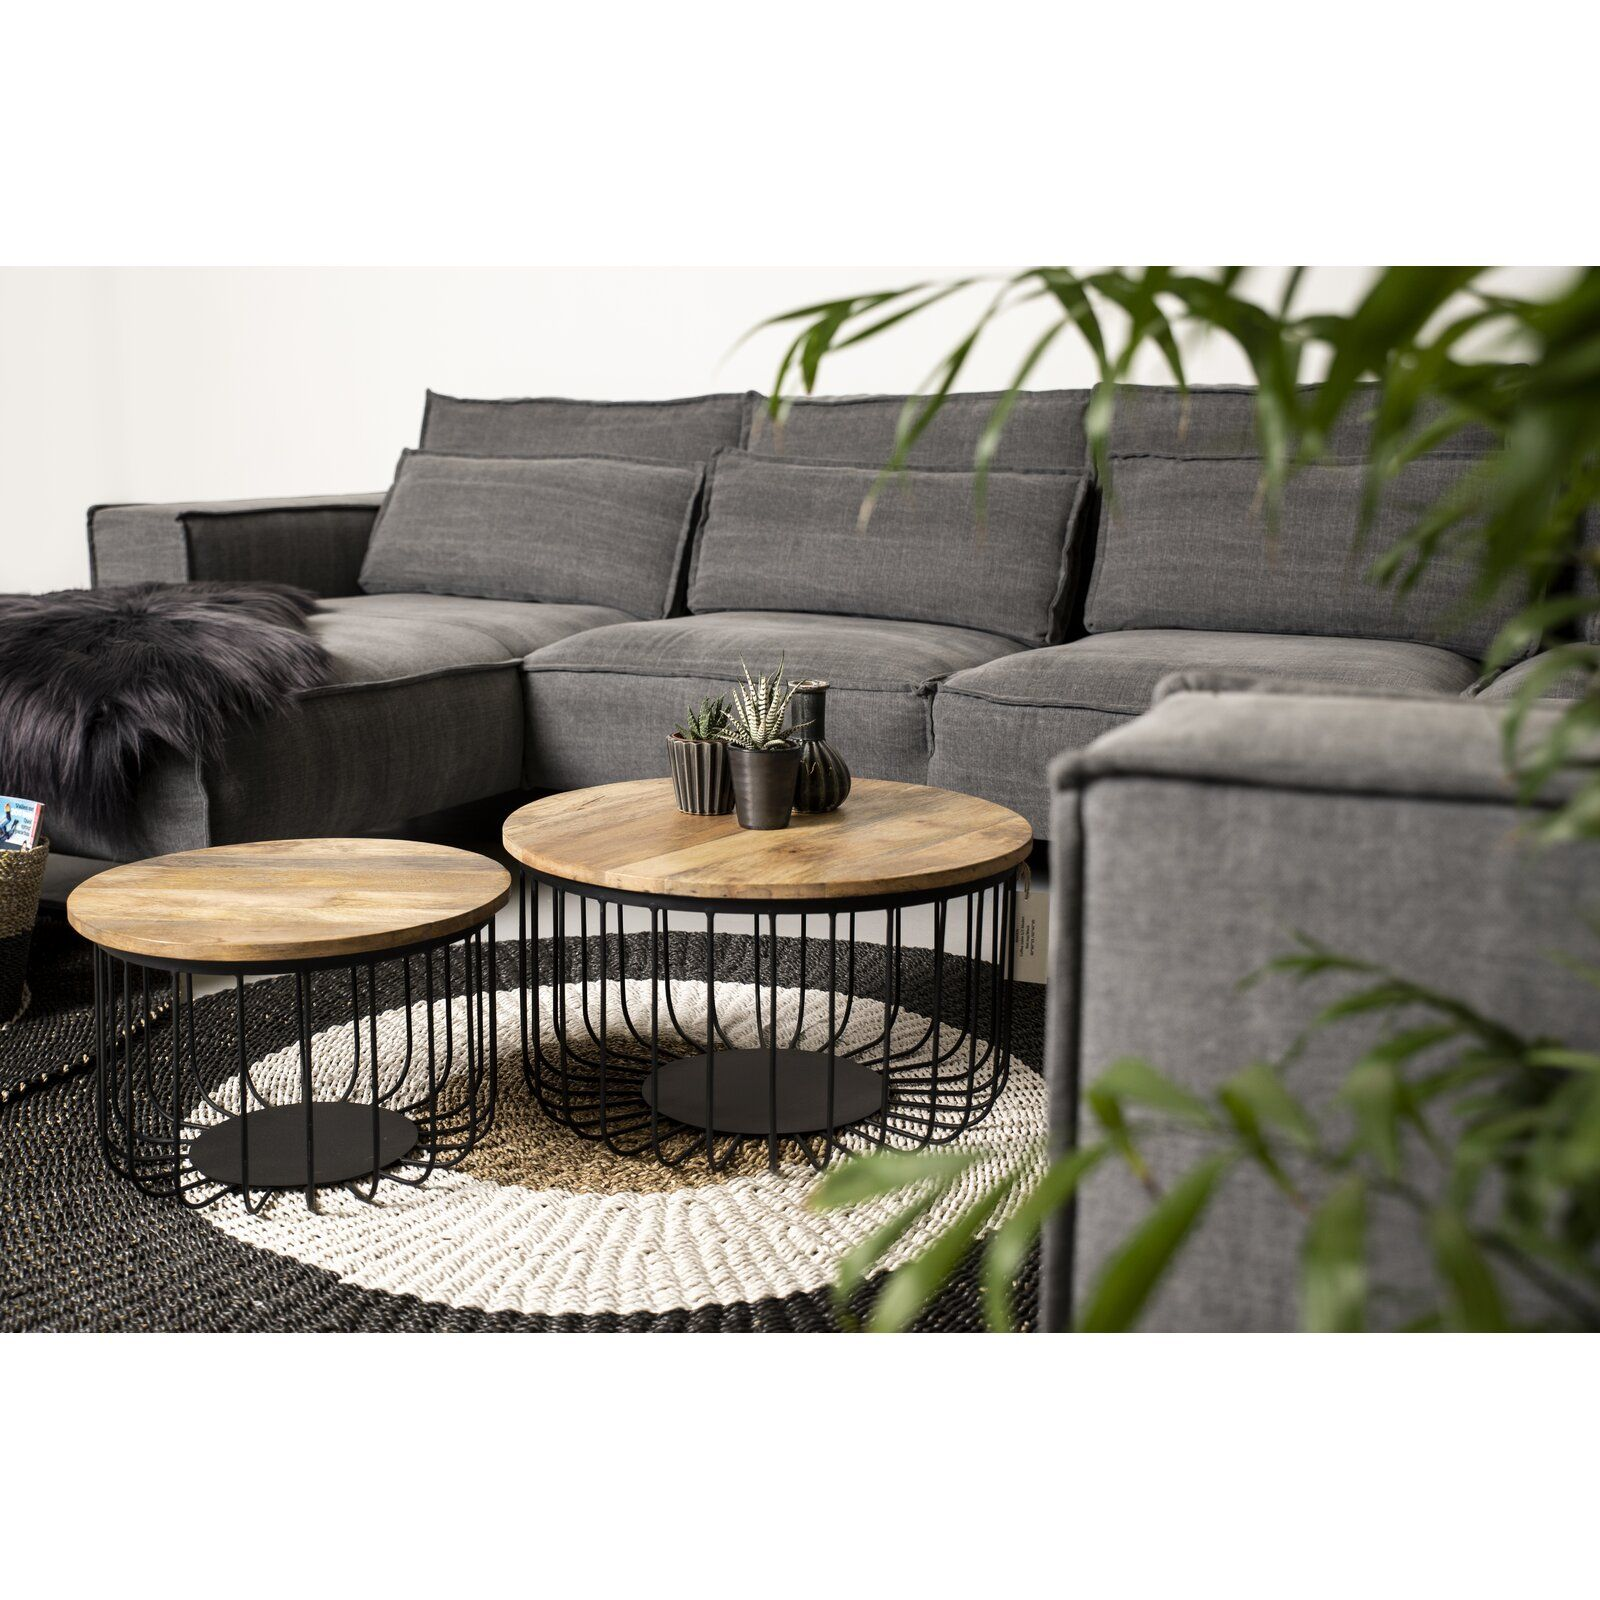 2 Tlg Couchtisch Set Howton In 2020 Farmhouse Furniture Living Furniture Furniture